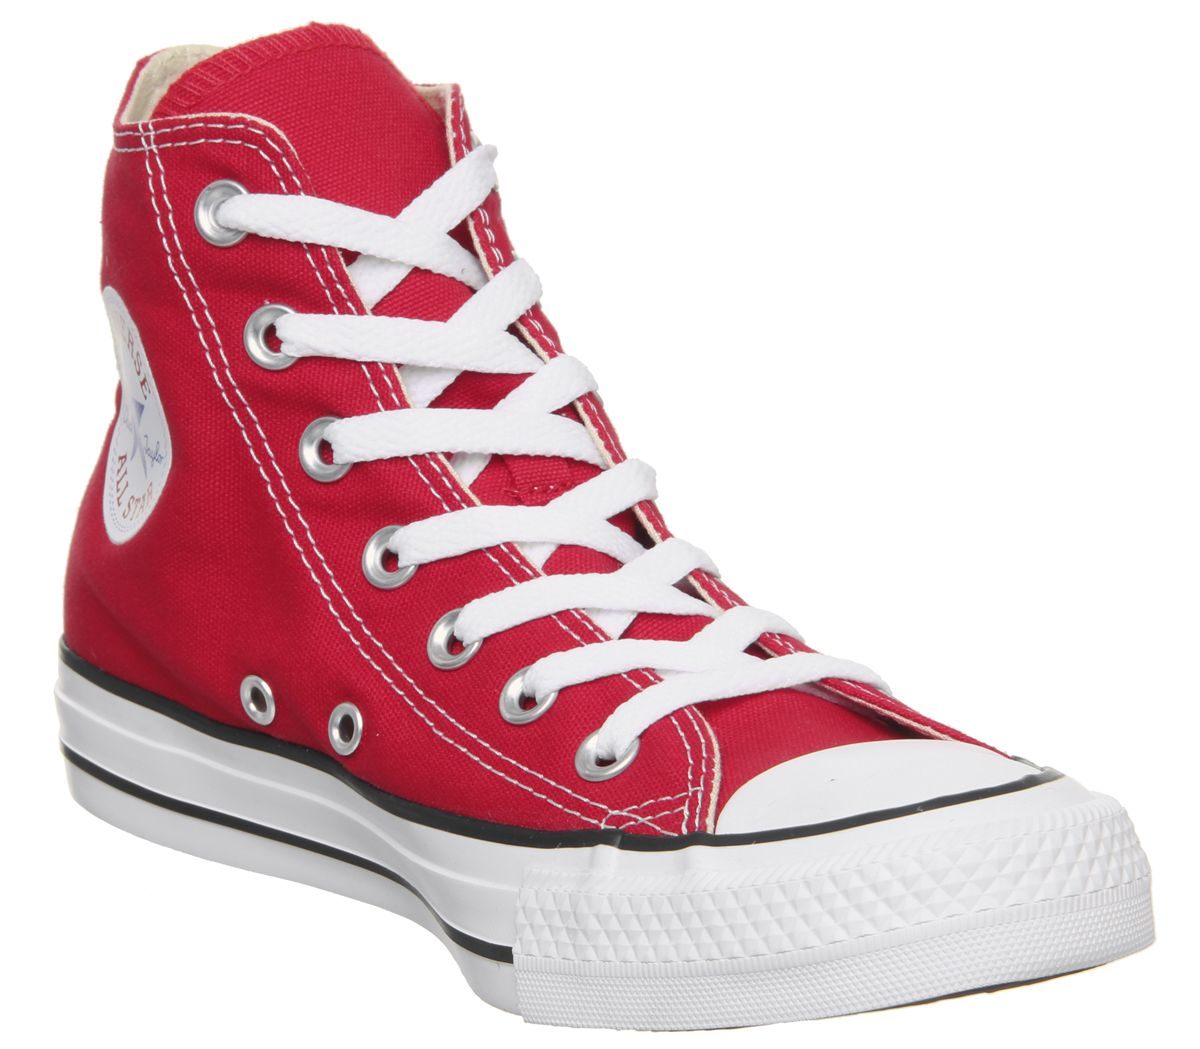 d8c69db175 Converse All Star Hi Red Canvas - Unisex Sports